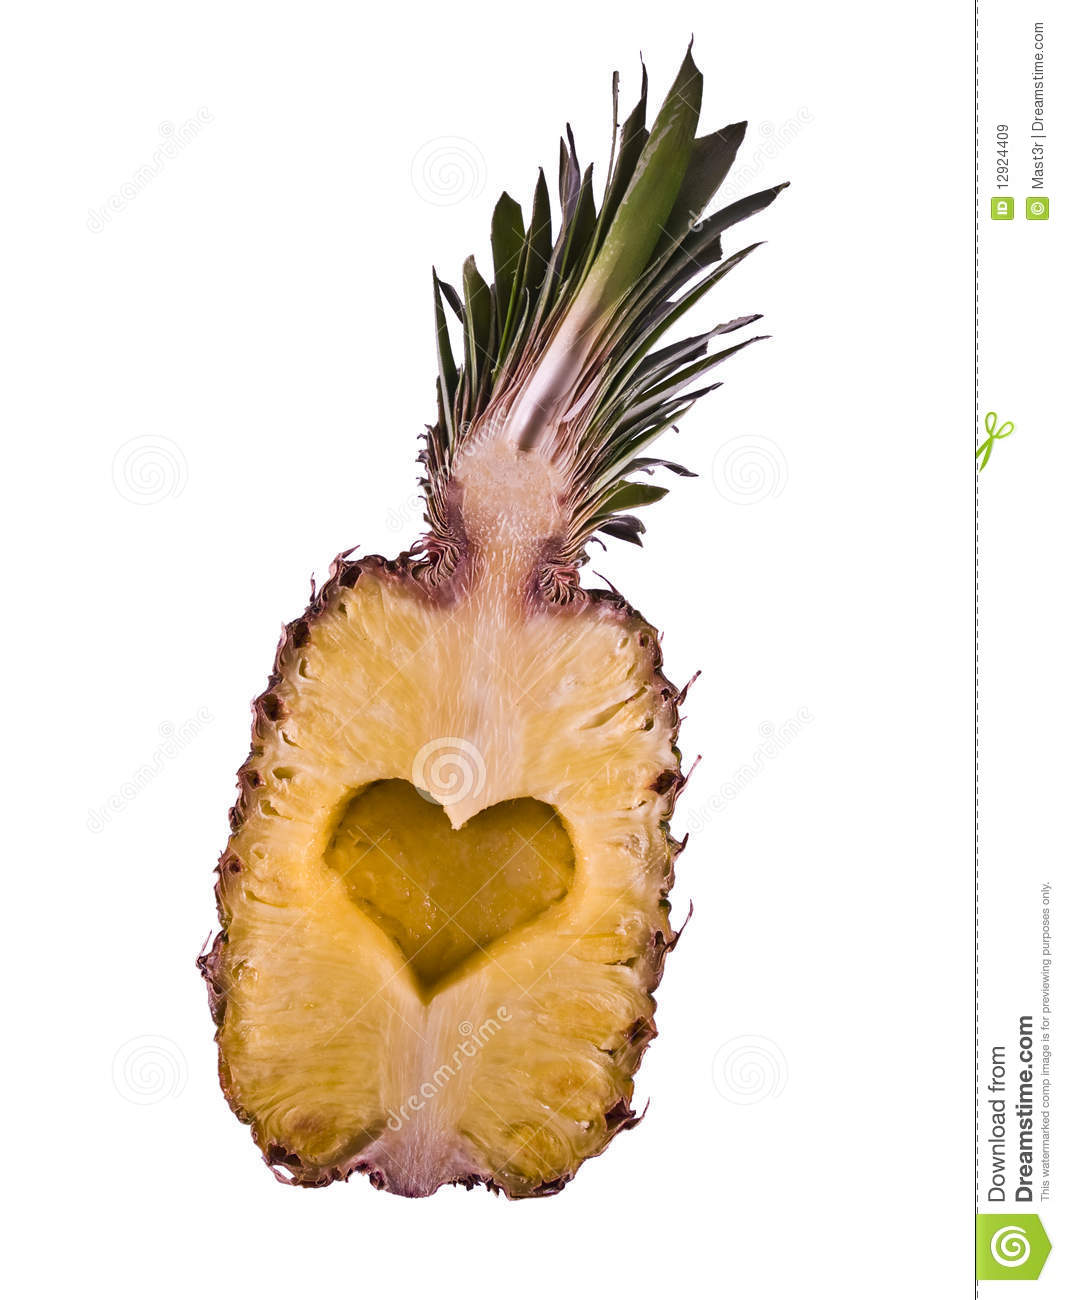 Pineapple Heart Cutted Heart Royalty Free Stock Images ...